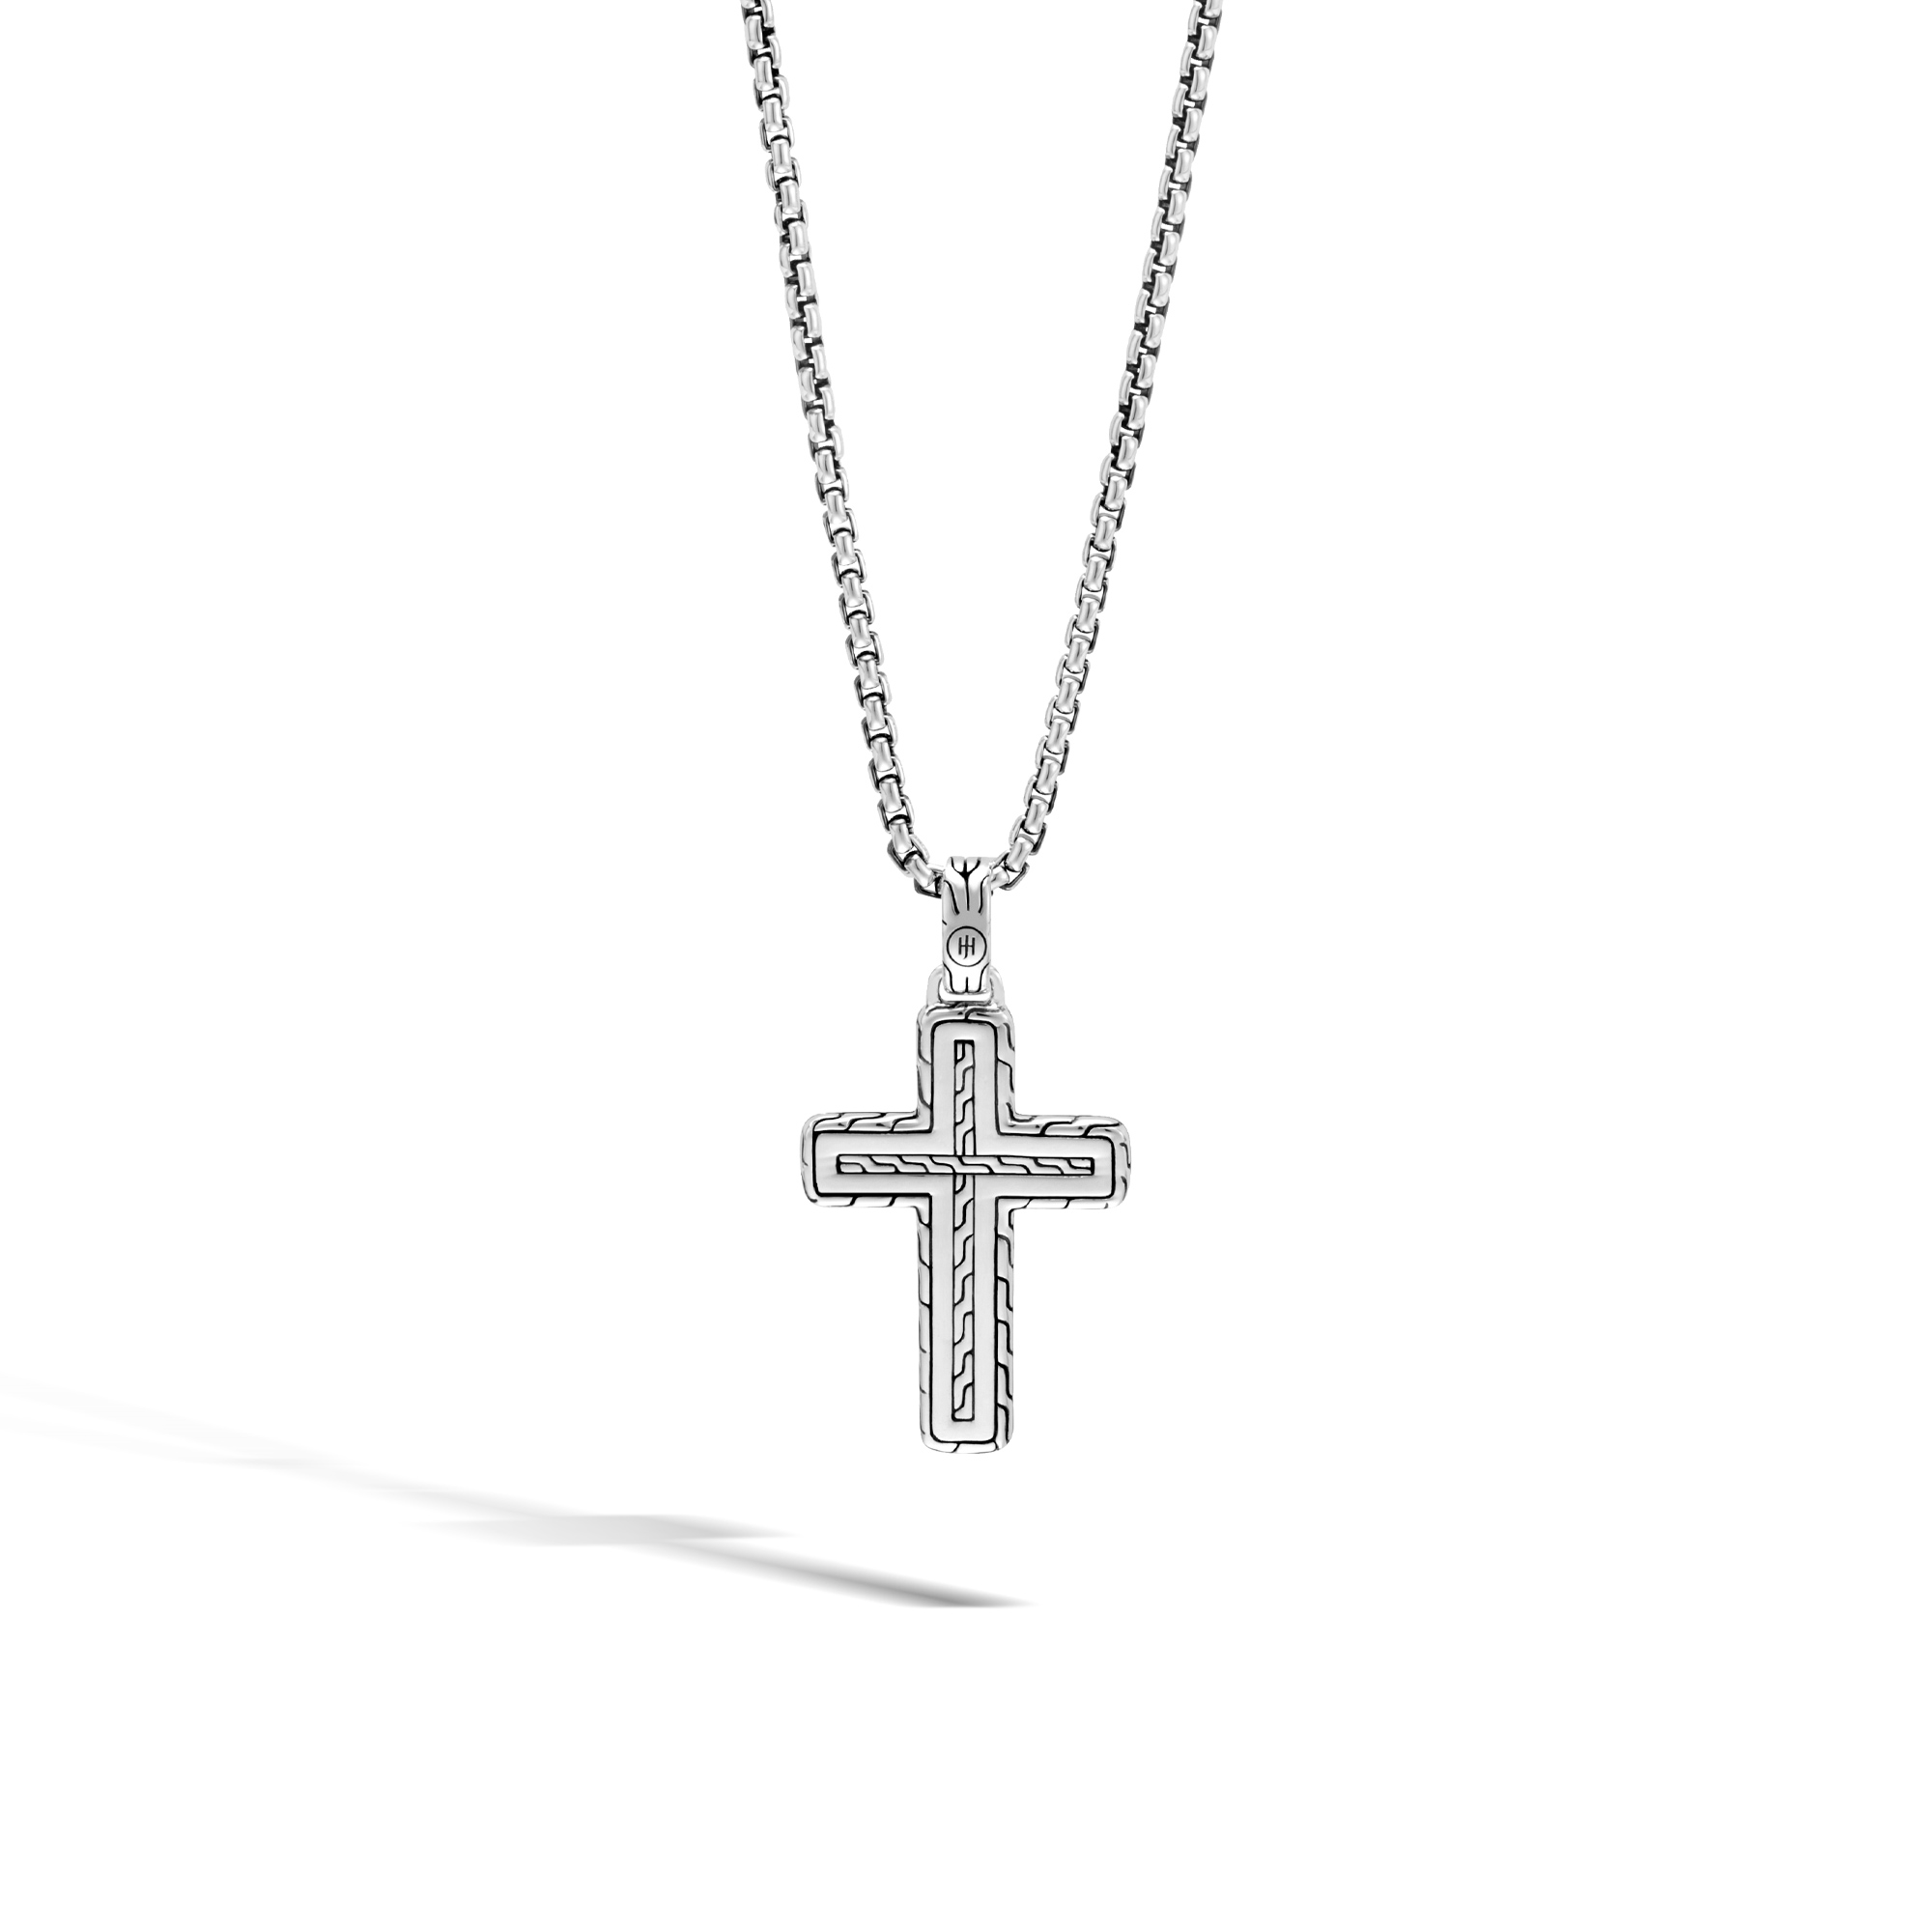 Chain Jawan Cross Necklace in Silver and 18K Gold, , large